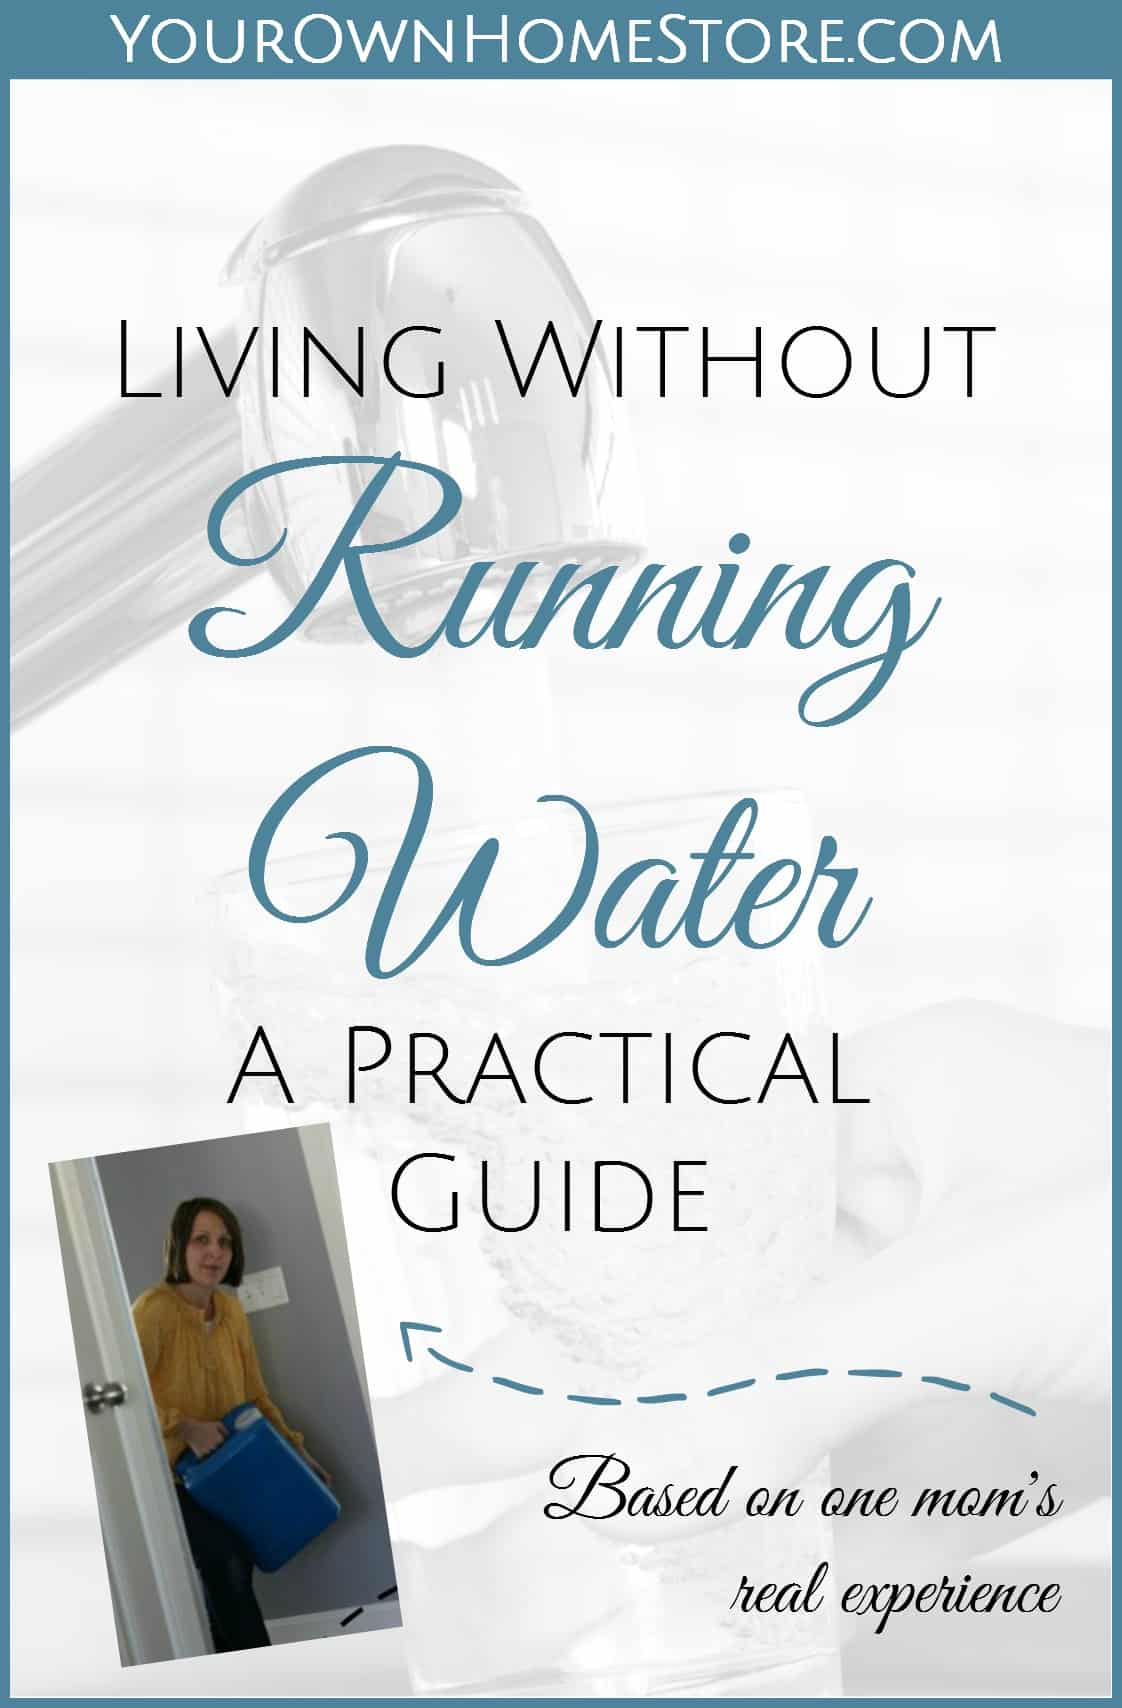 Emergency Water Storage Guide | How much water to store | Real life experience with no running water